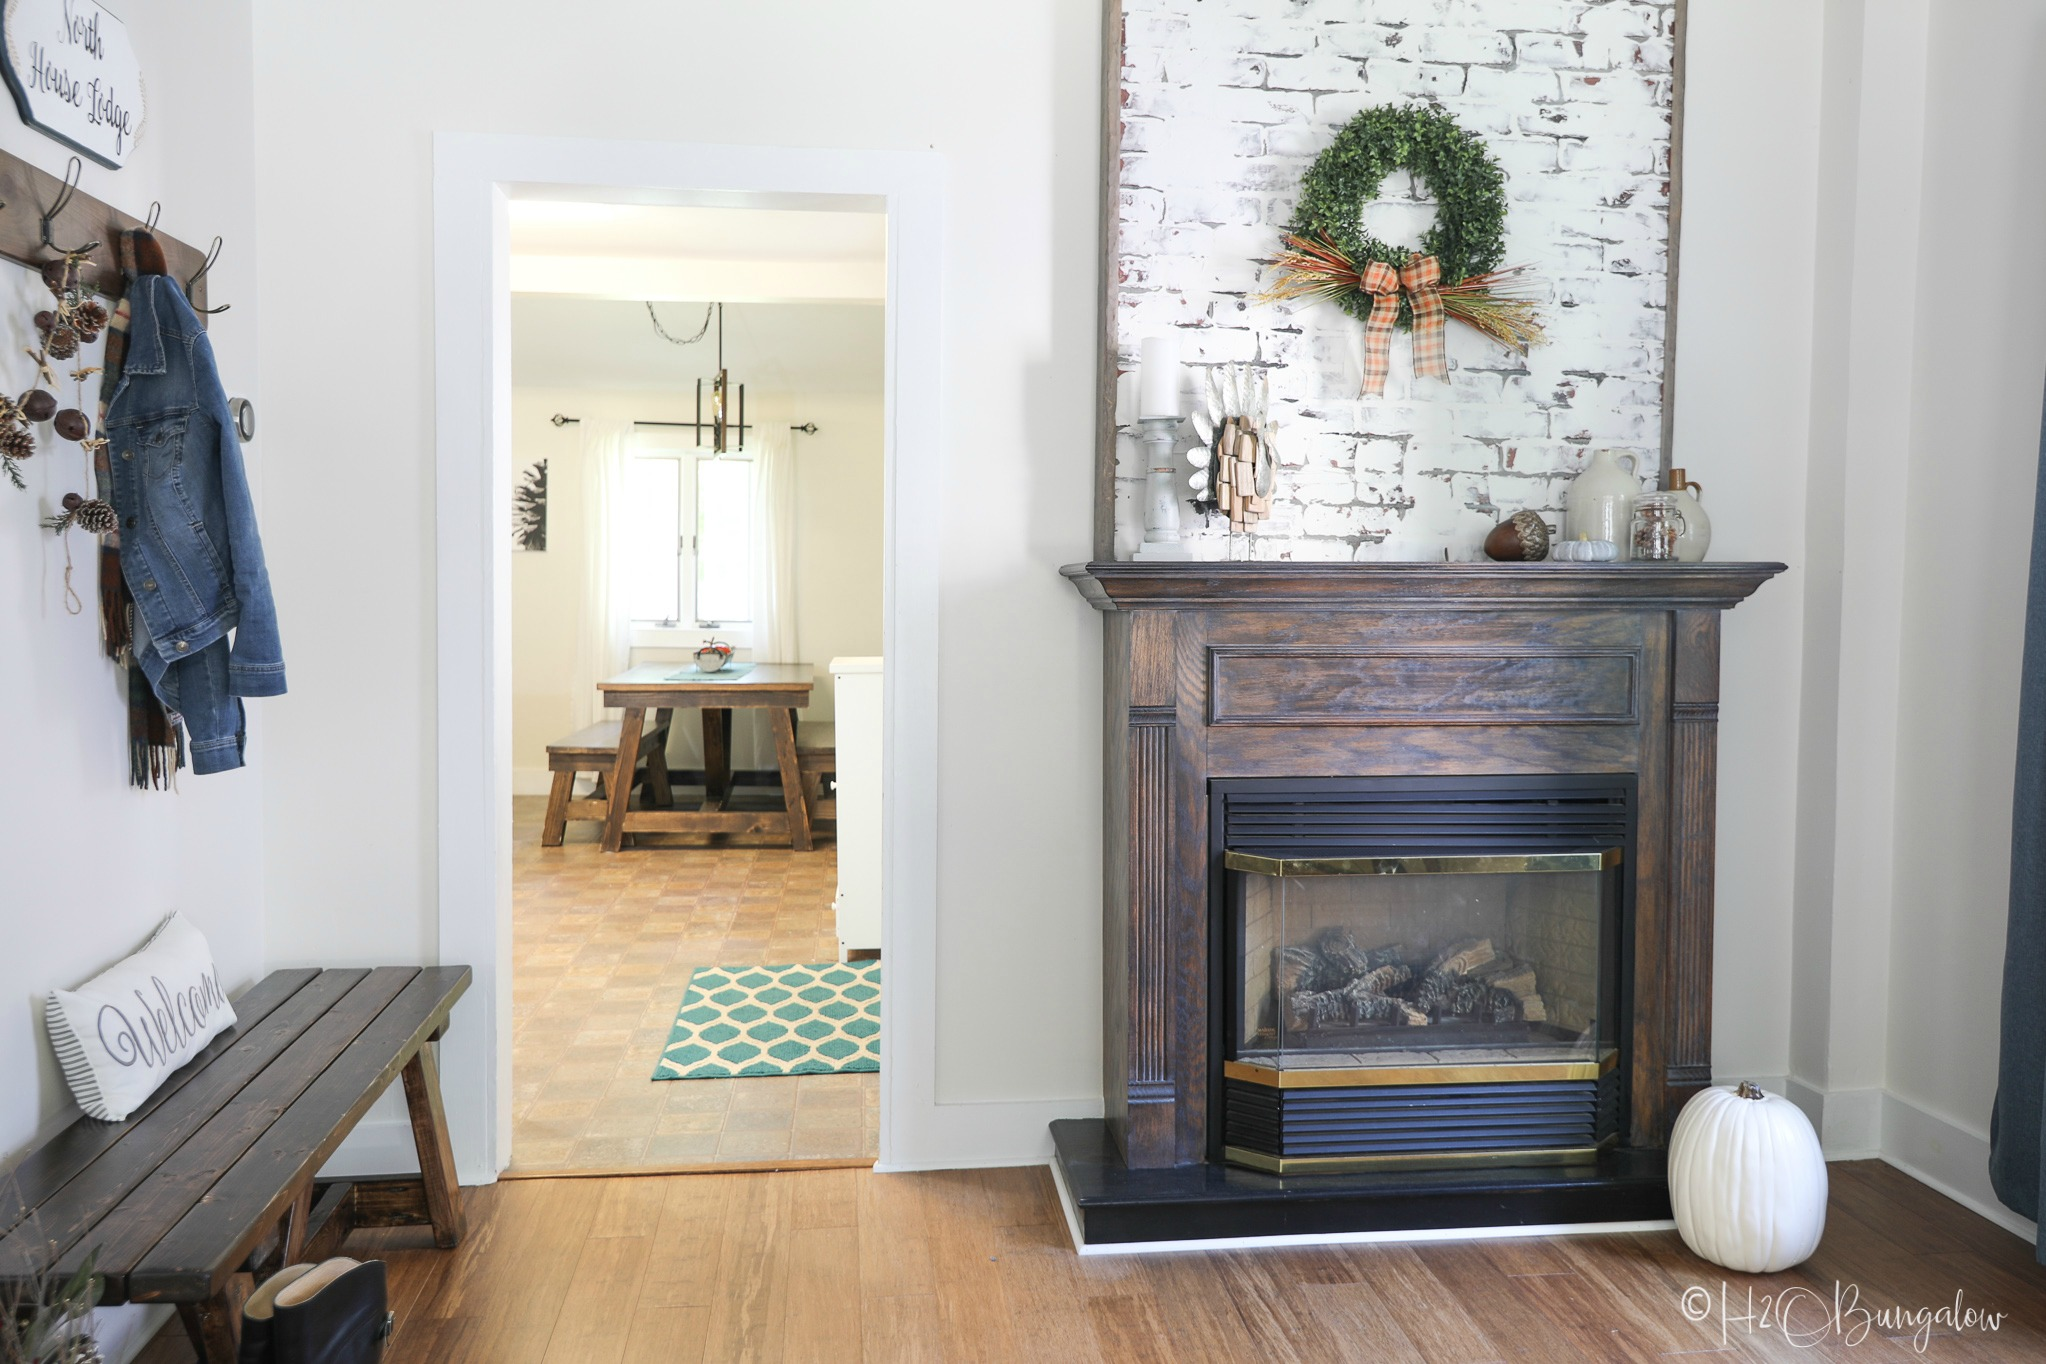 Home tour of the North House Lodge #54 H2OBungalow's DIY project house and a vacation rental nestled in Ludlow, VT a fabulous four season destination.